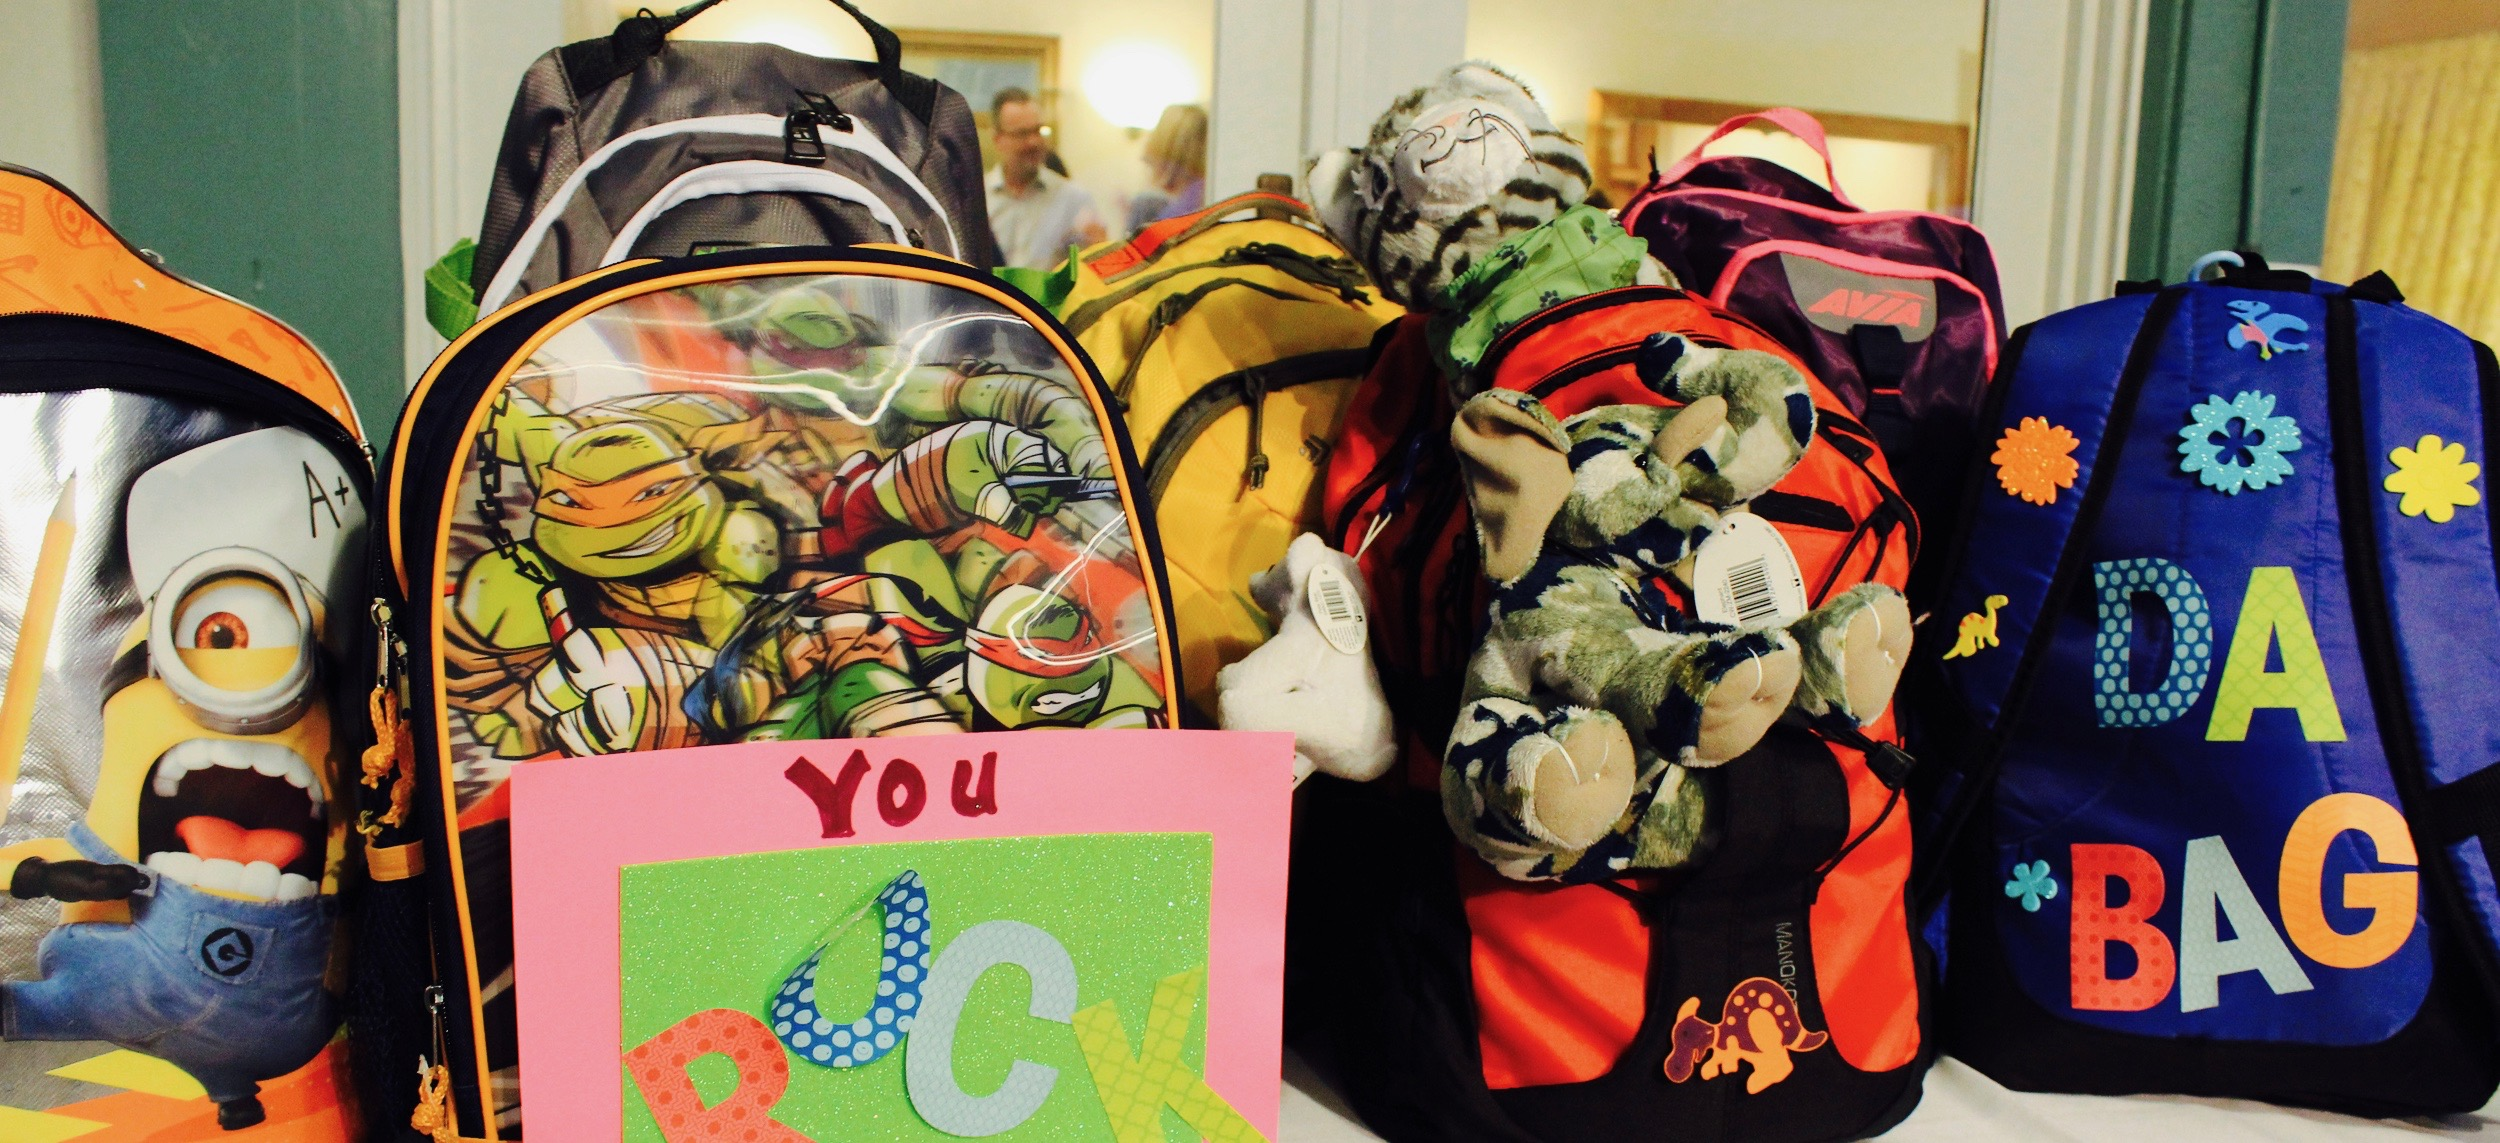 TNTB school supplies backpacks for kids